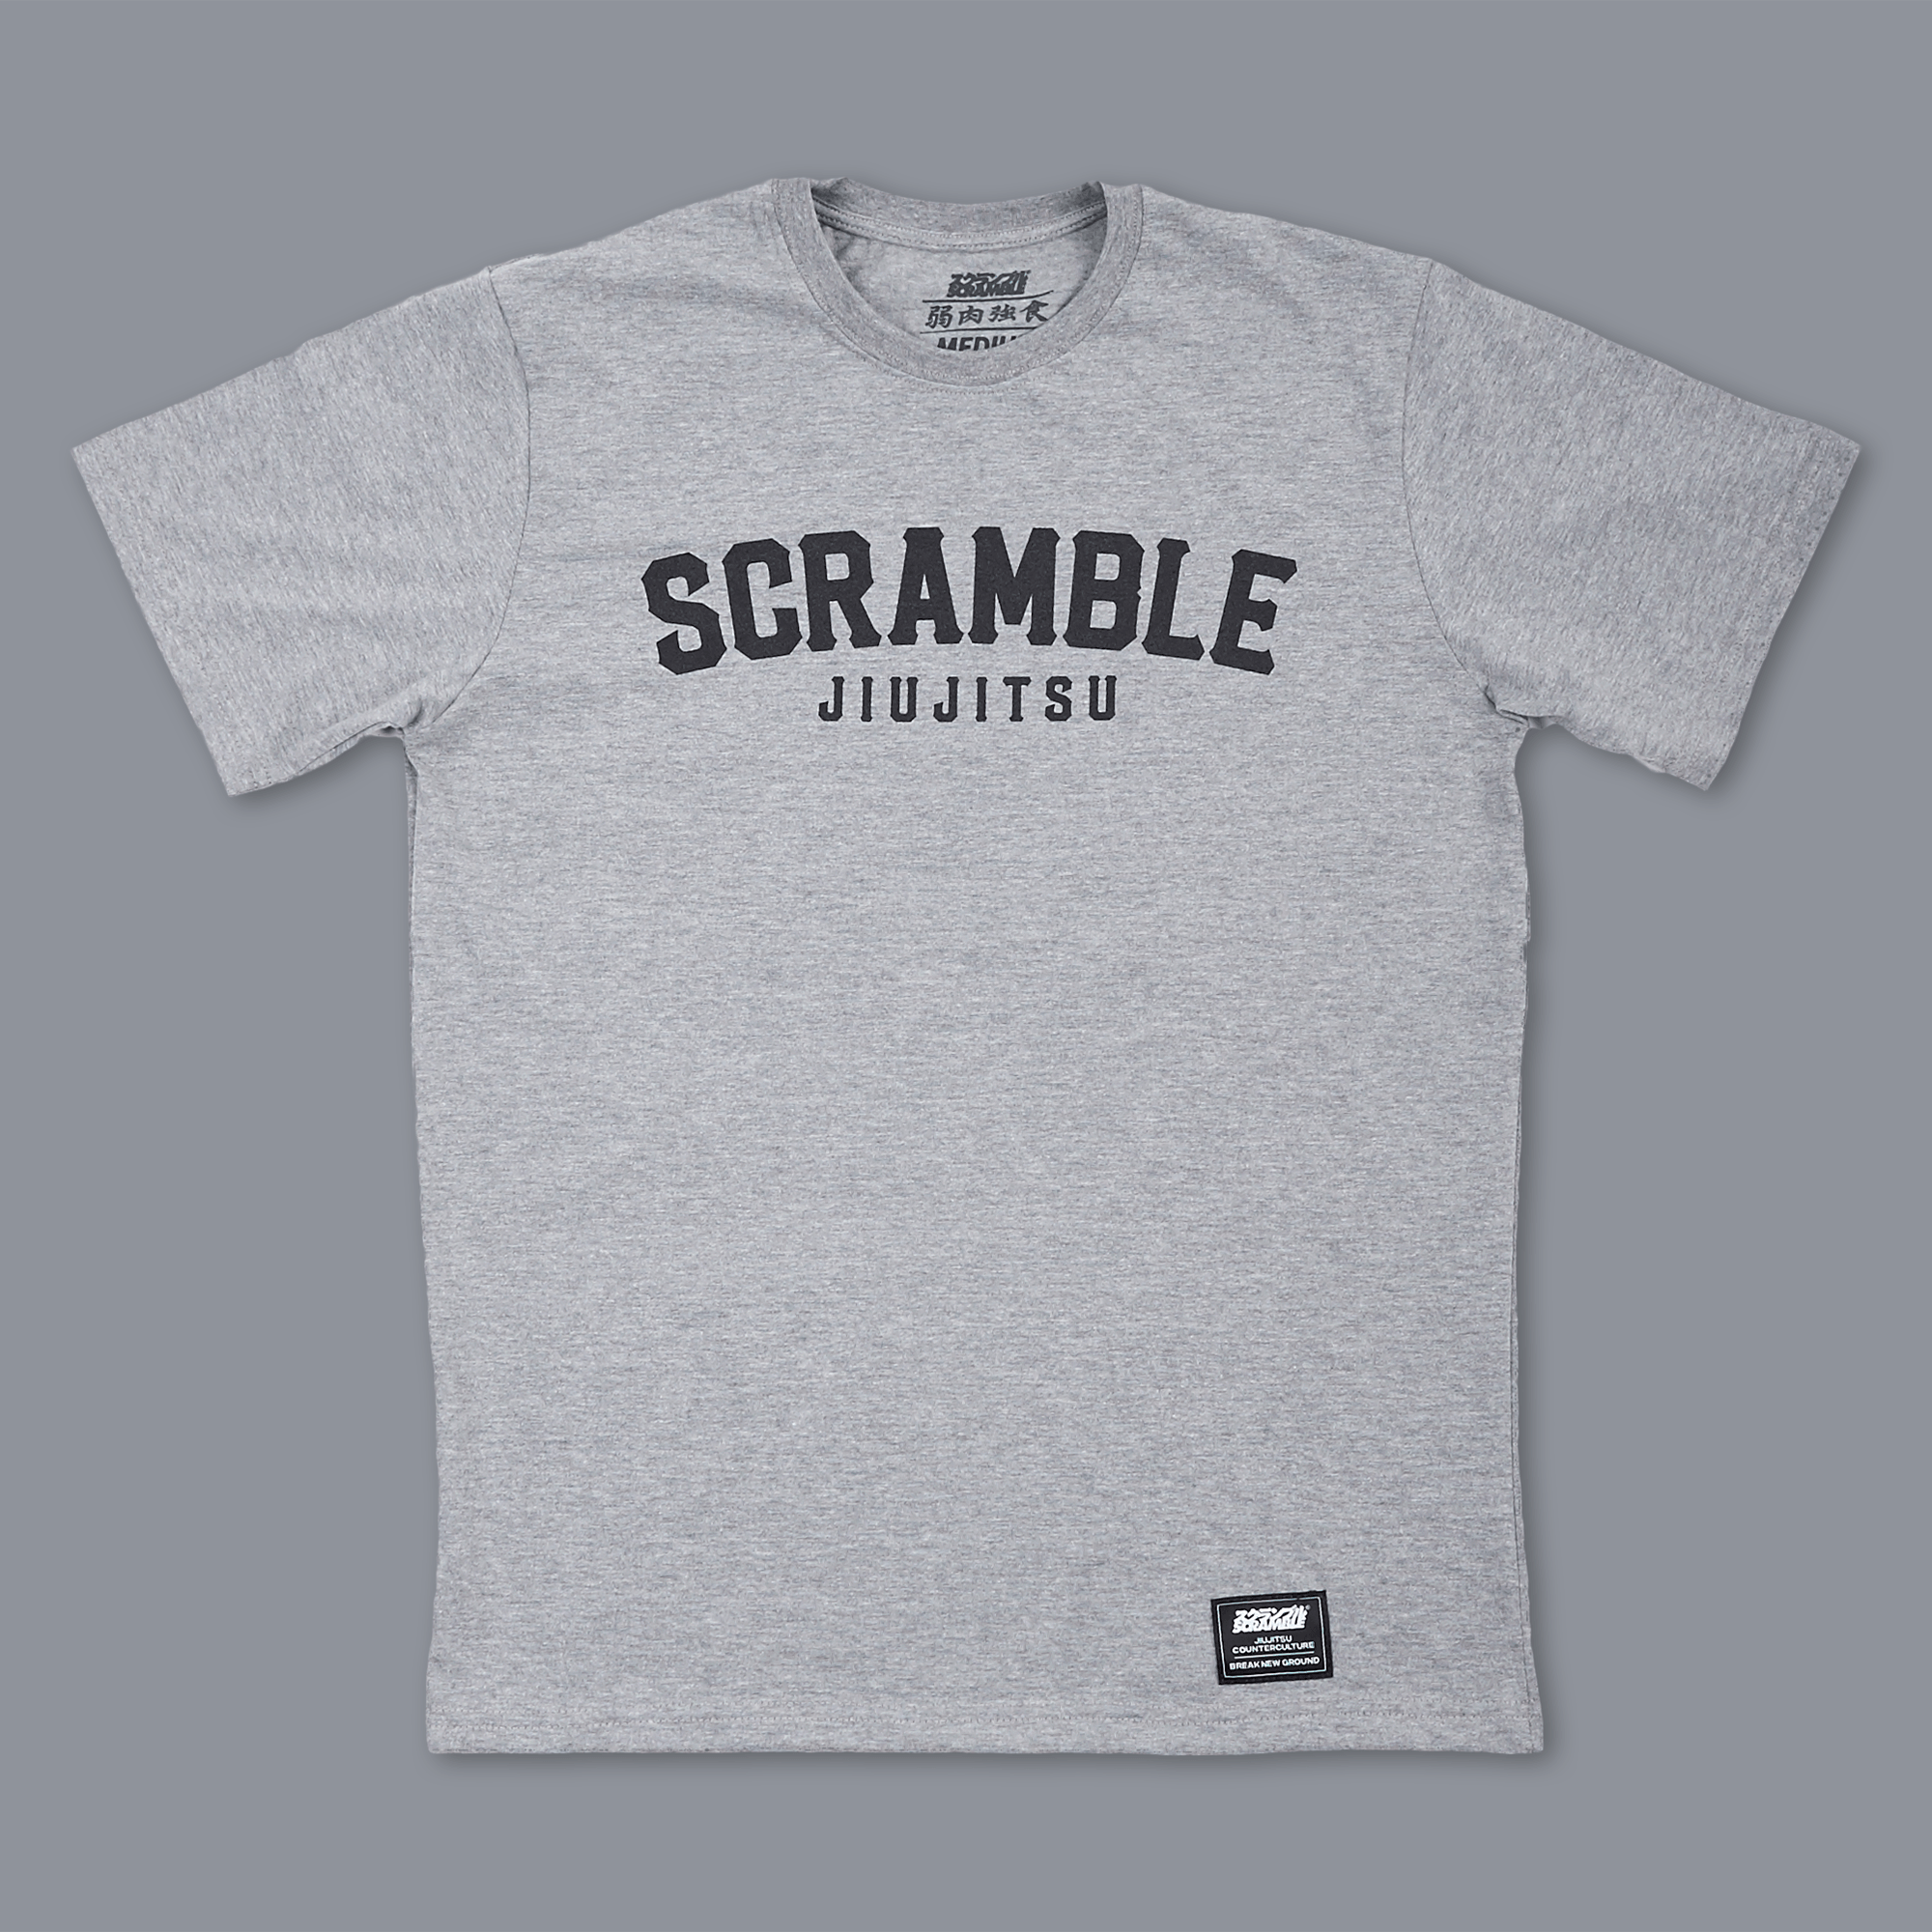 SCRAMBLE NOTHING GAINED EASILY TEE – DARK GREY|格闘技、柔術Tシャツ